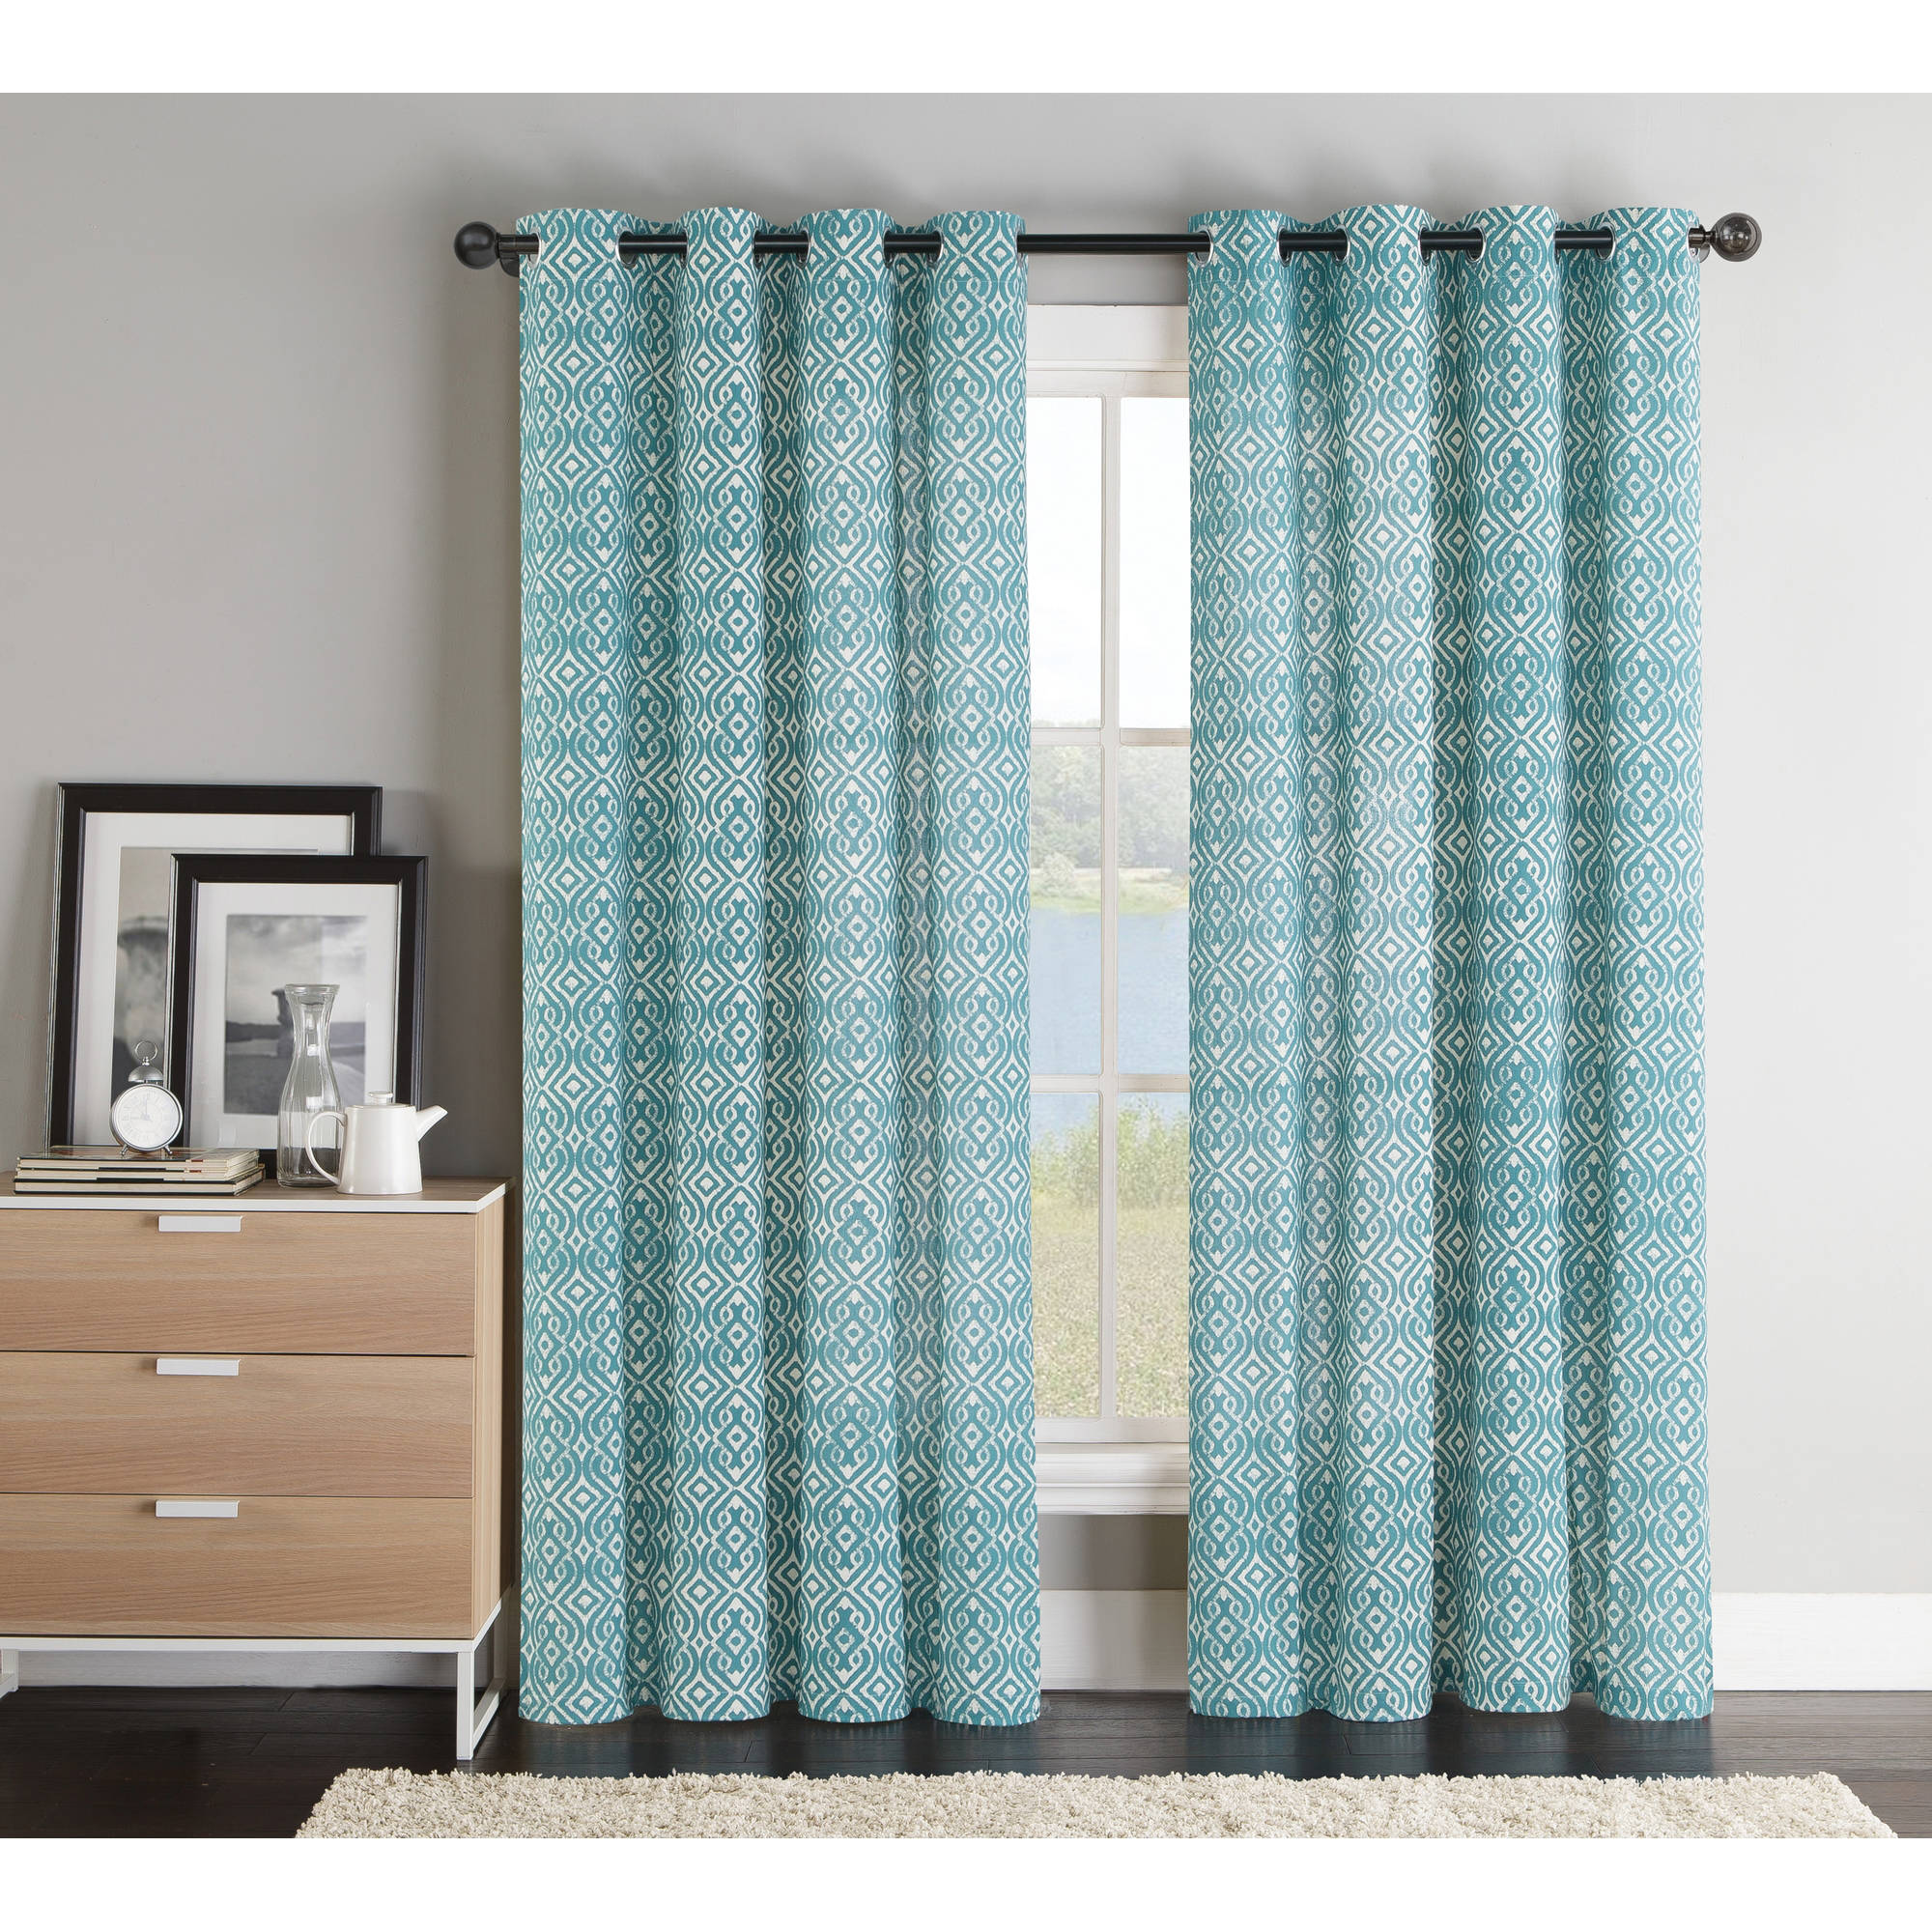 "***DISCONTINUED*** VCNY Home Brayden 84"" Length Printed Grommet Top Window Curtains"